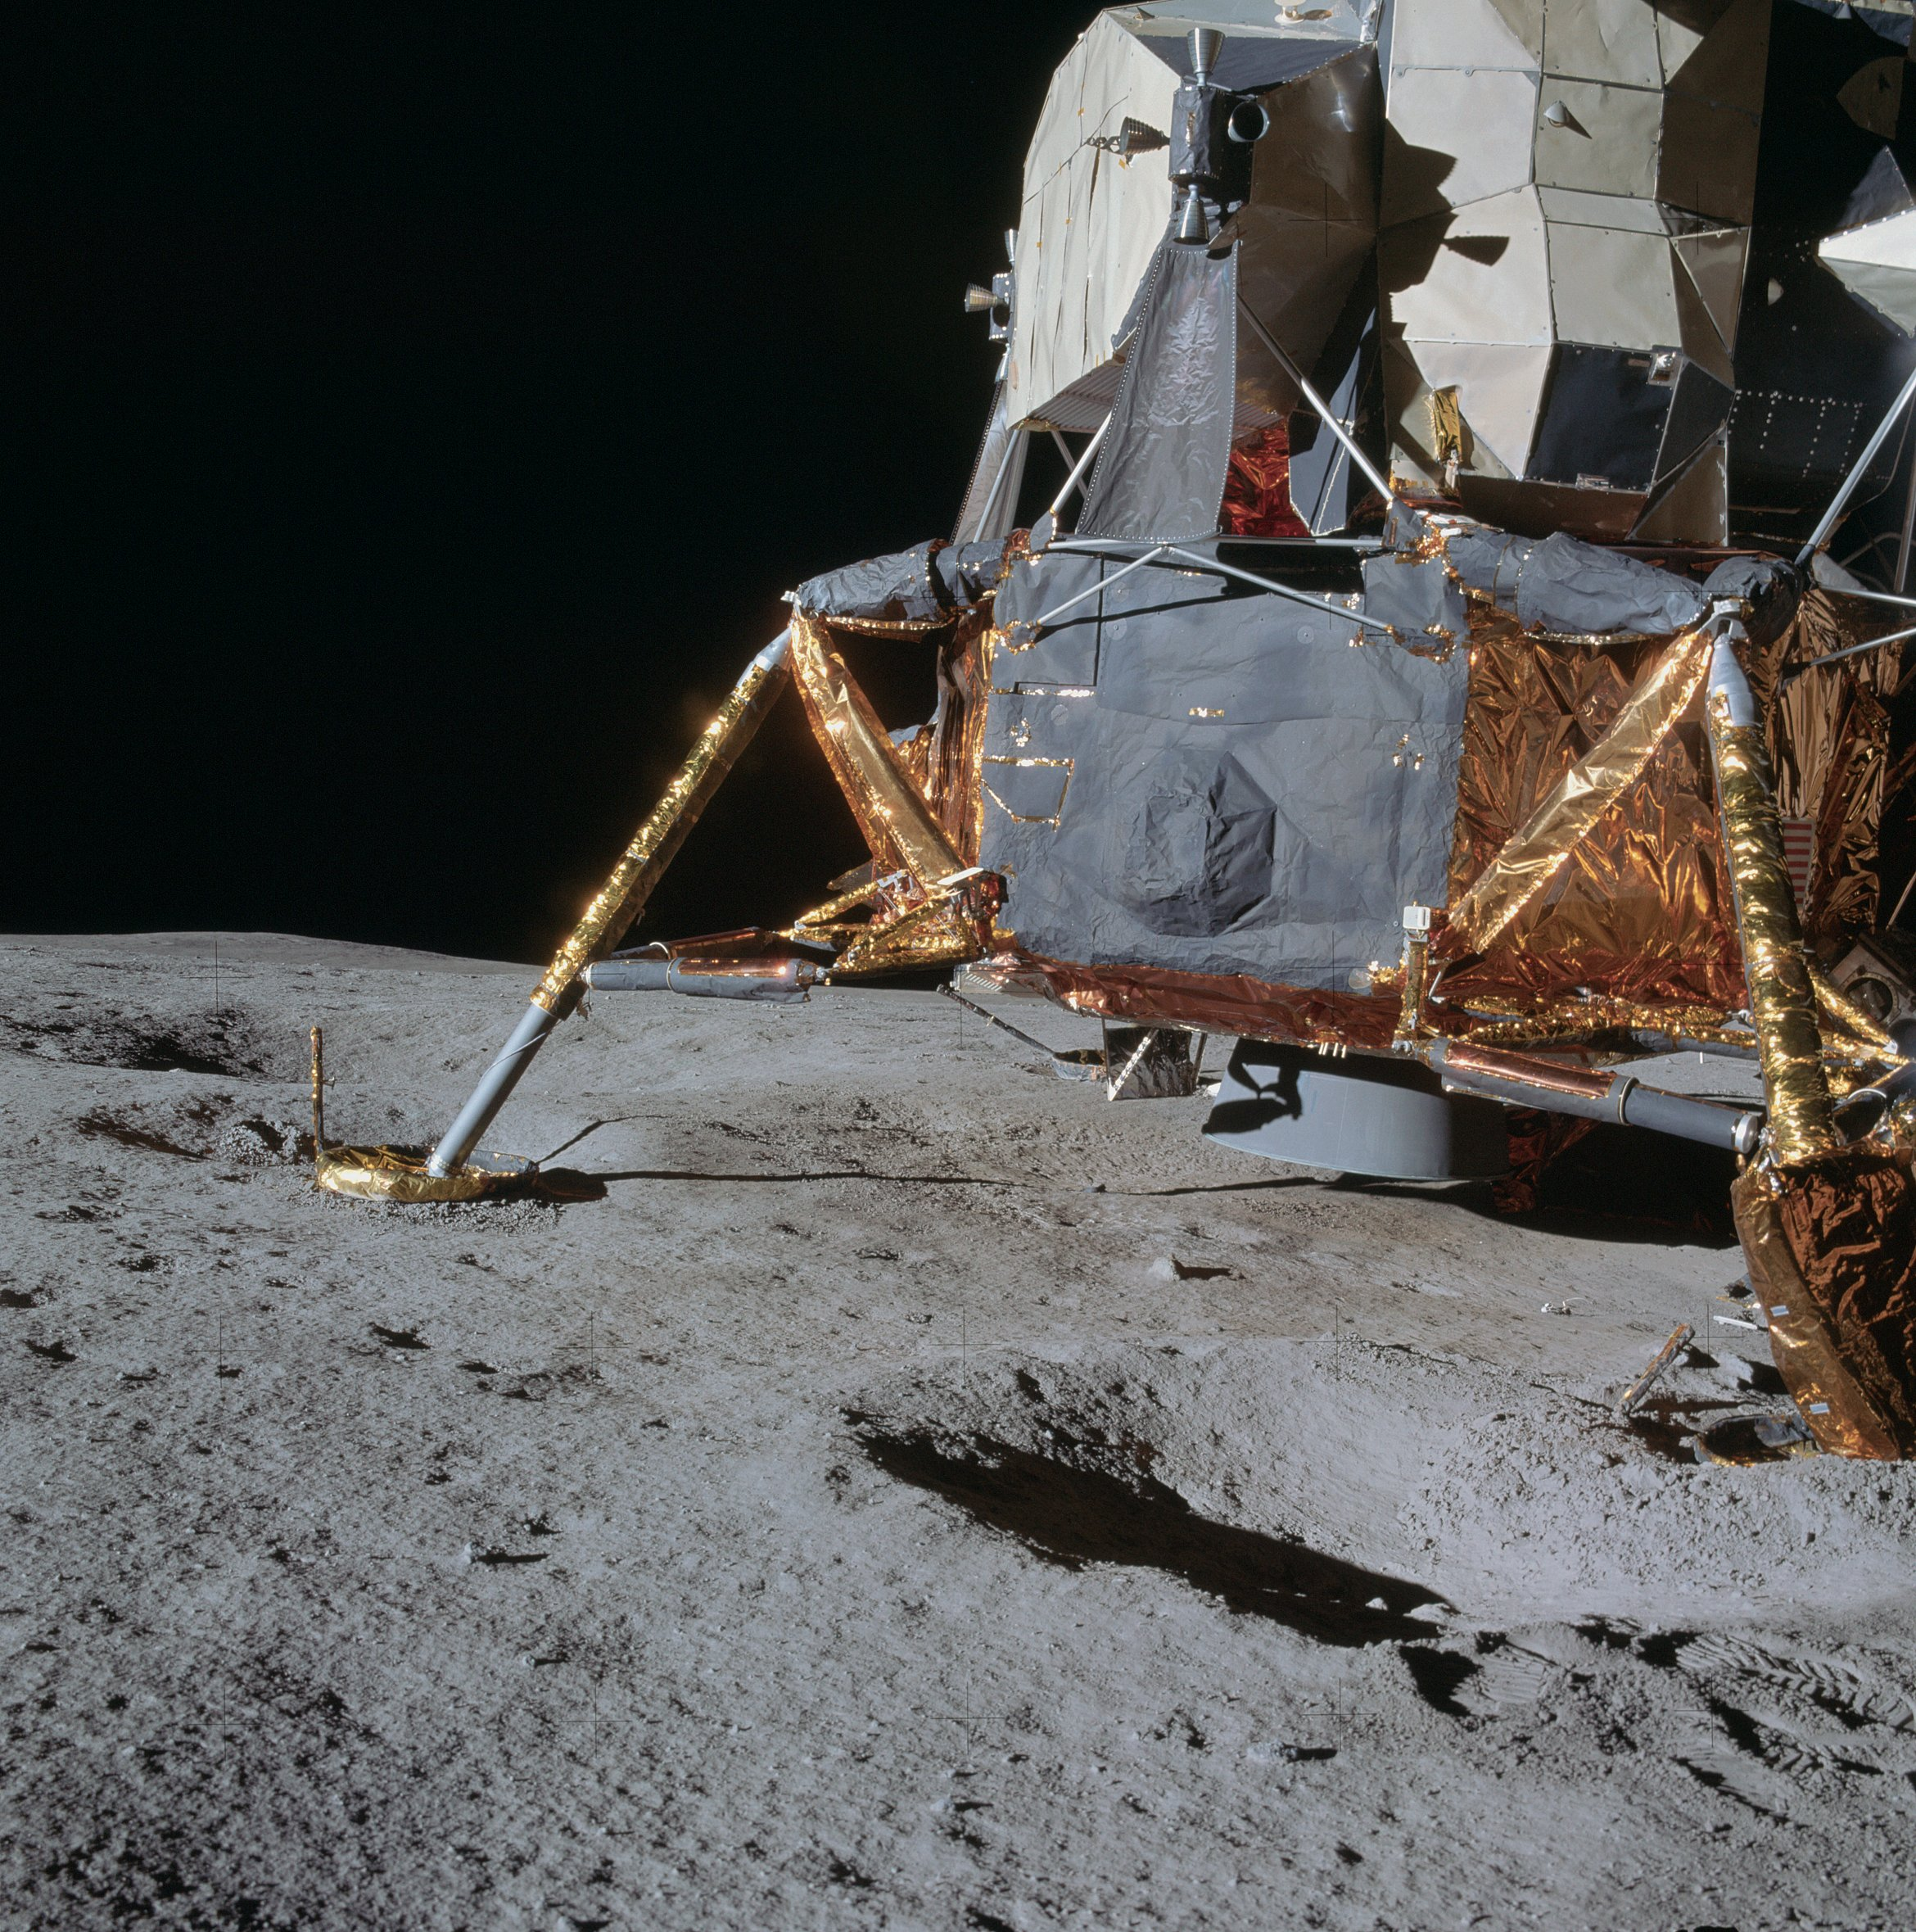 apollo 14 lunar module - photo #7